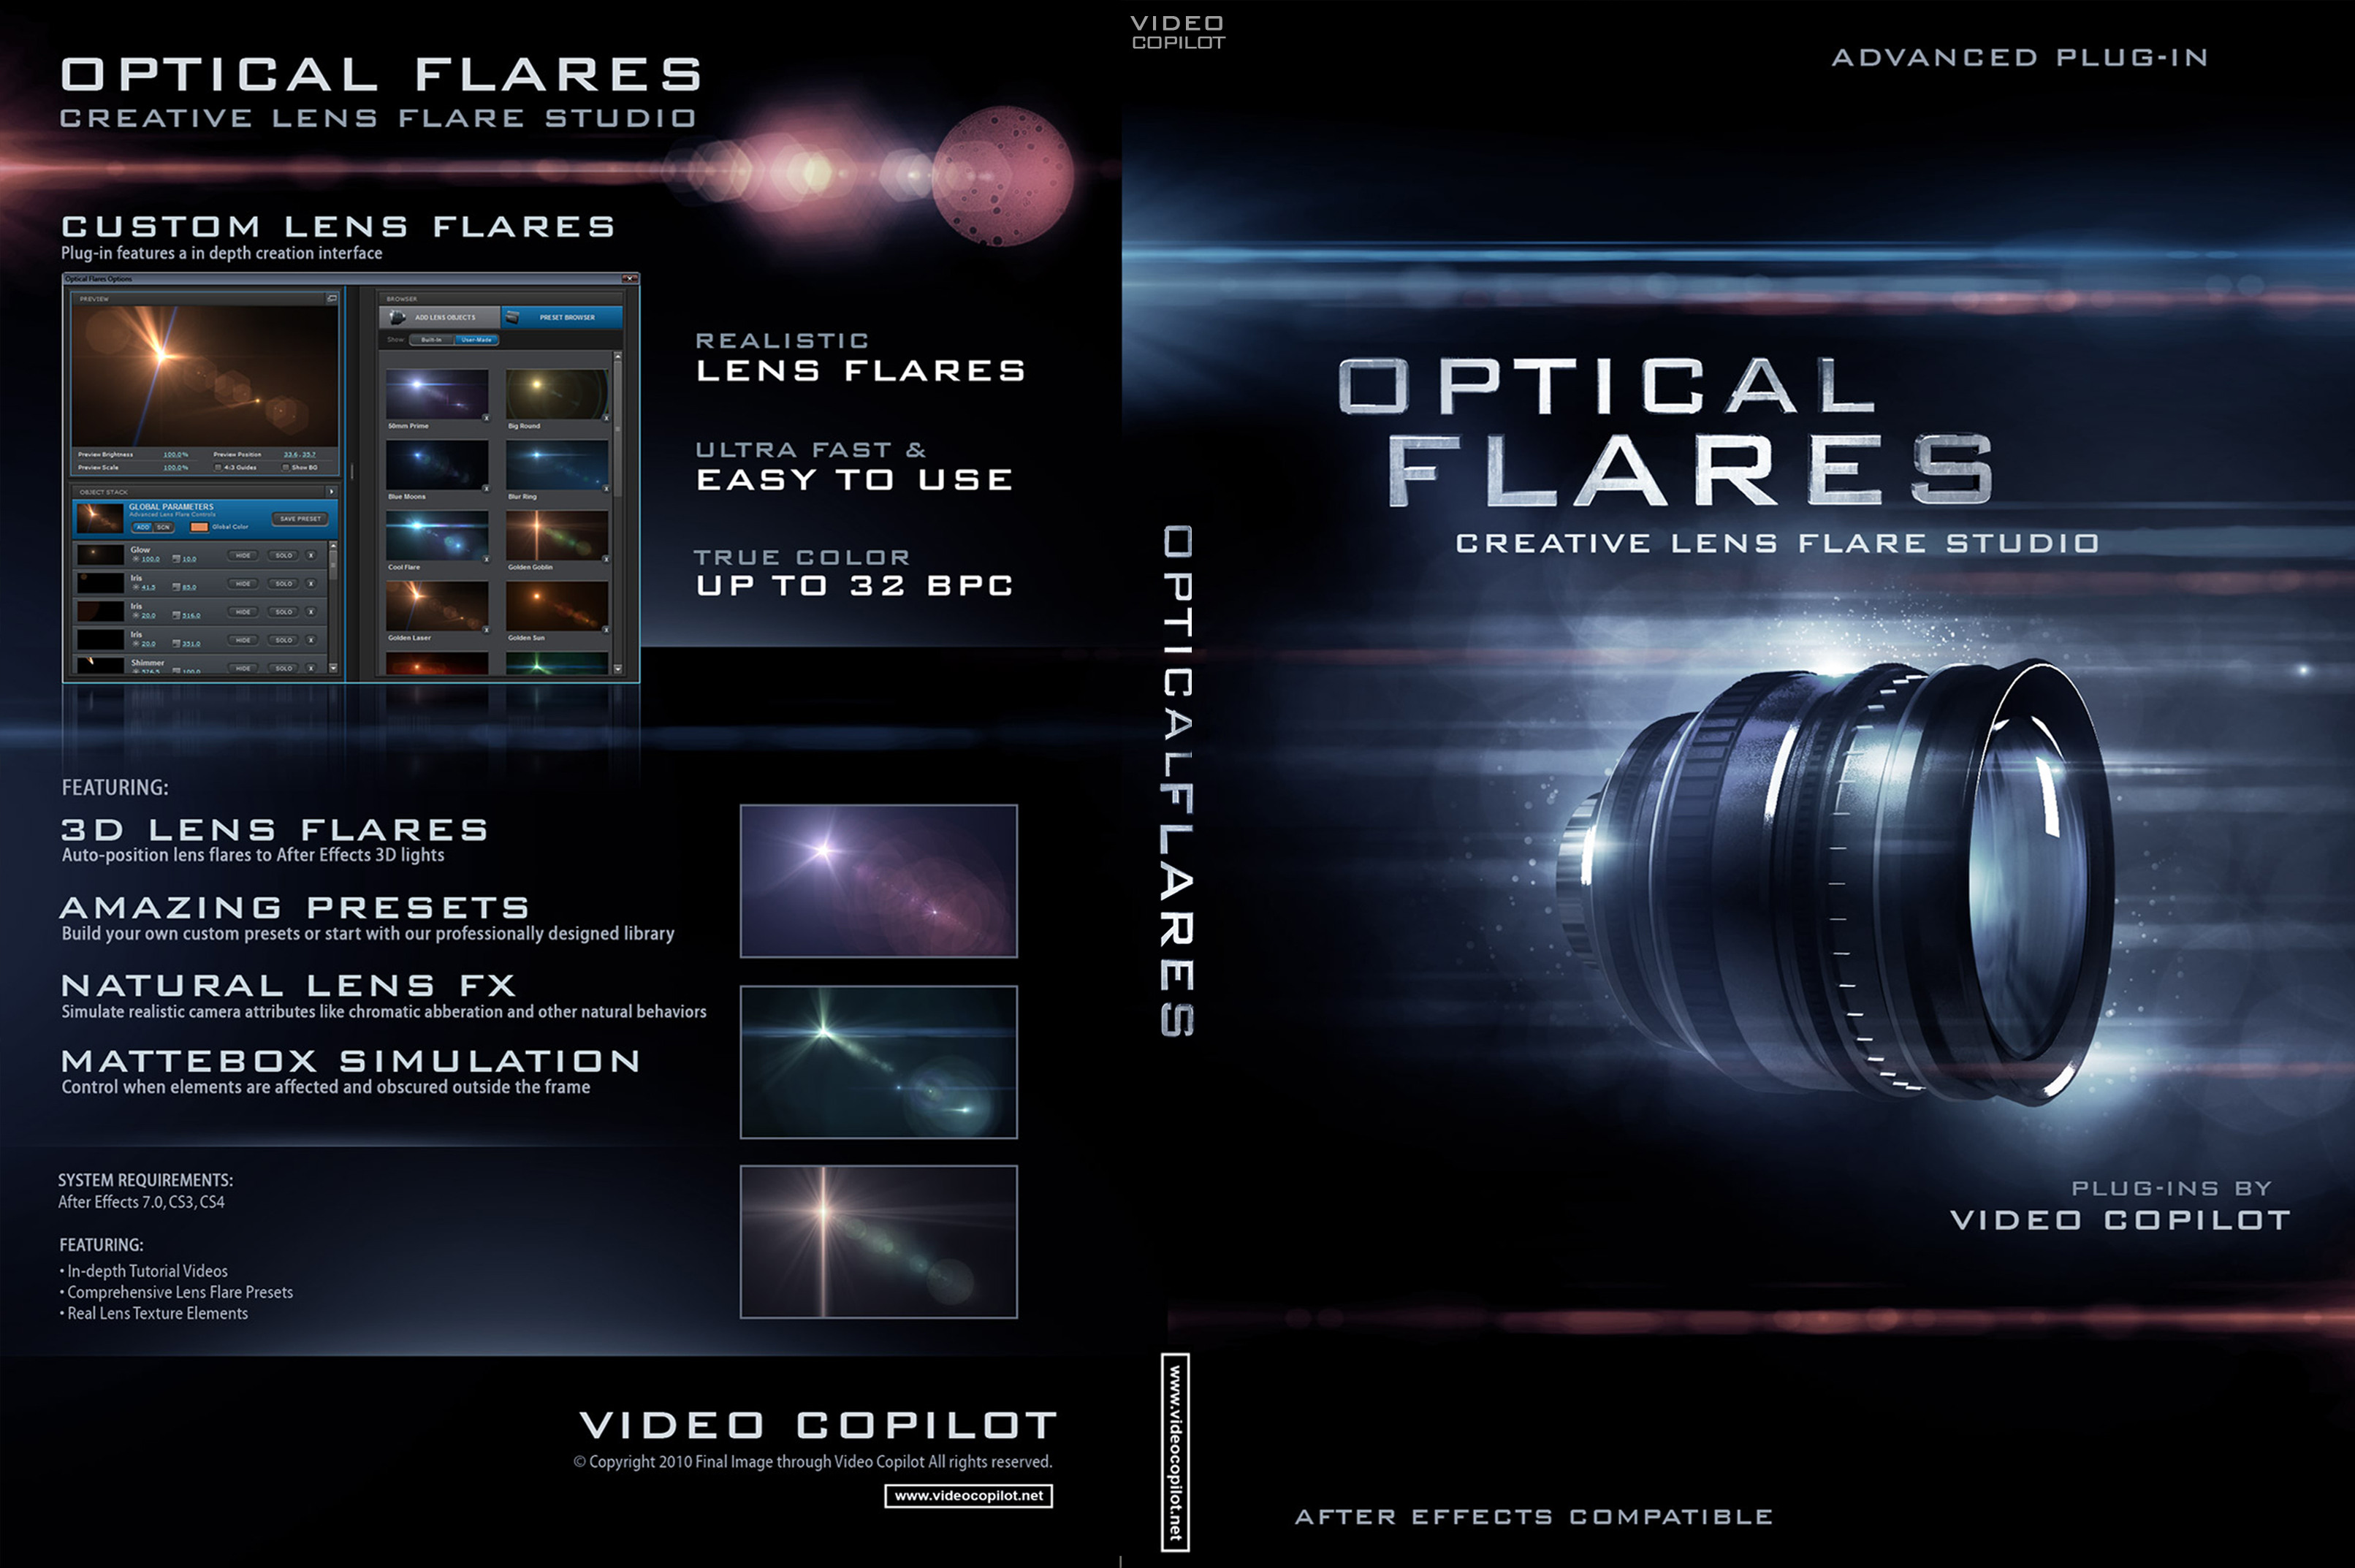 Best Video Copilot Optical Flares Software